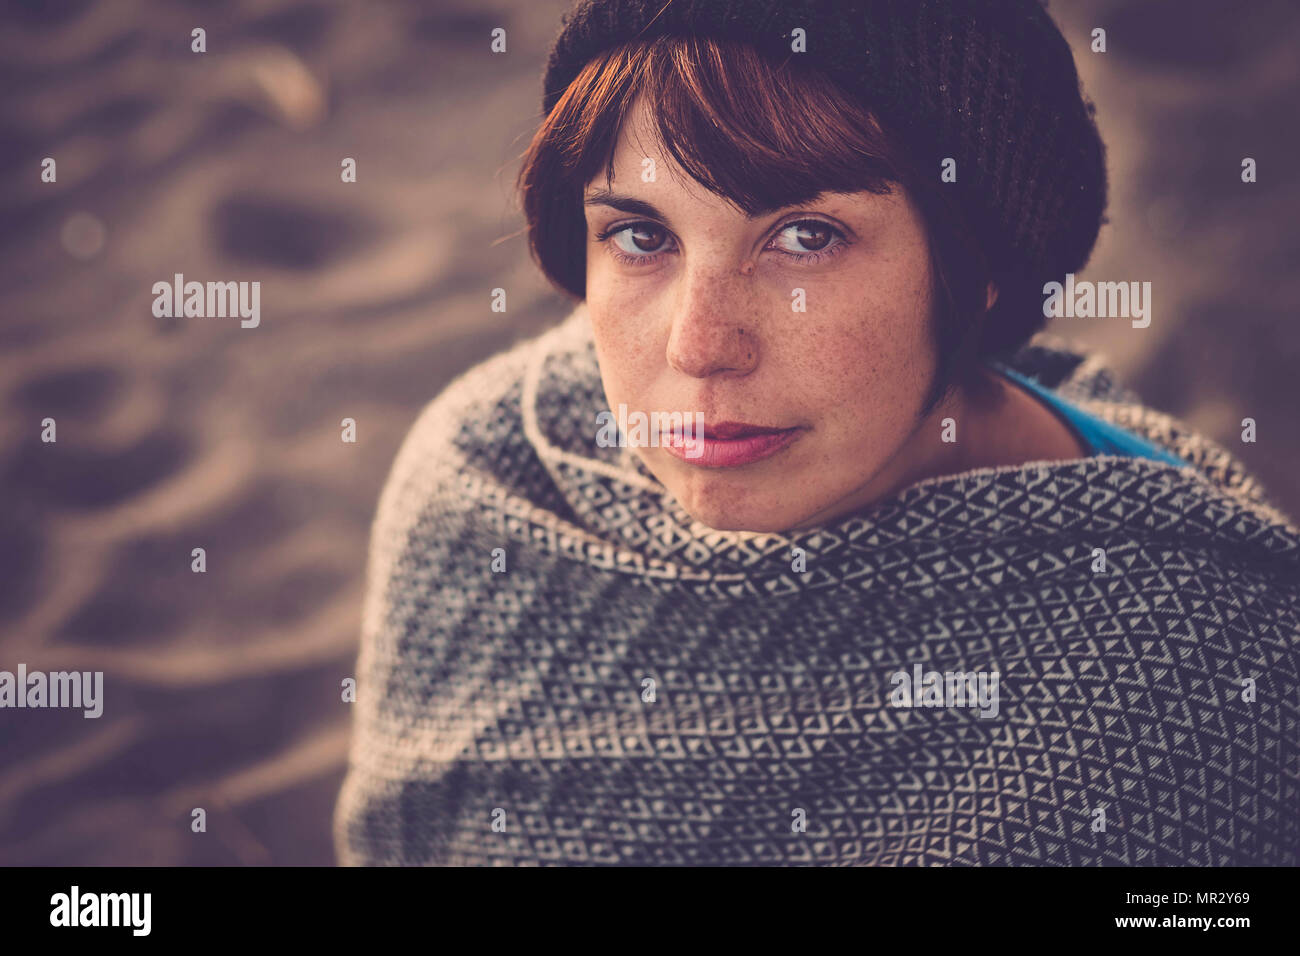 nice young lady portrait in vintage style filter. look at the camera with freckles on the face - Stock Image